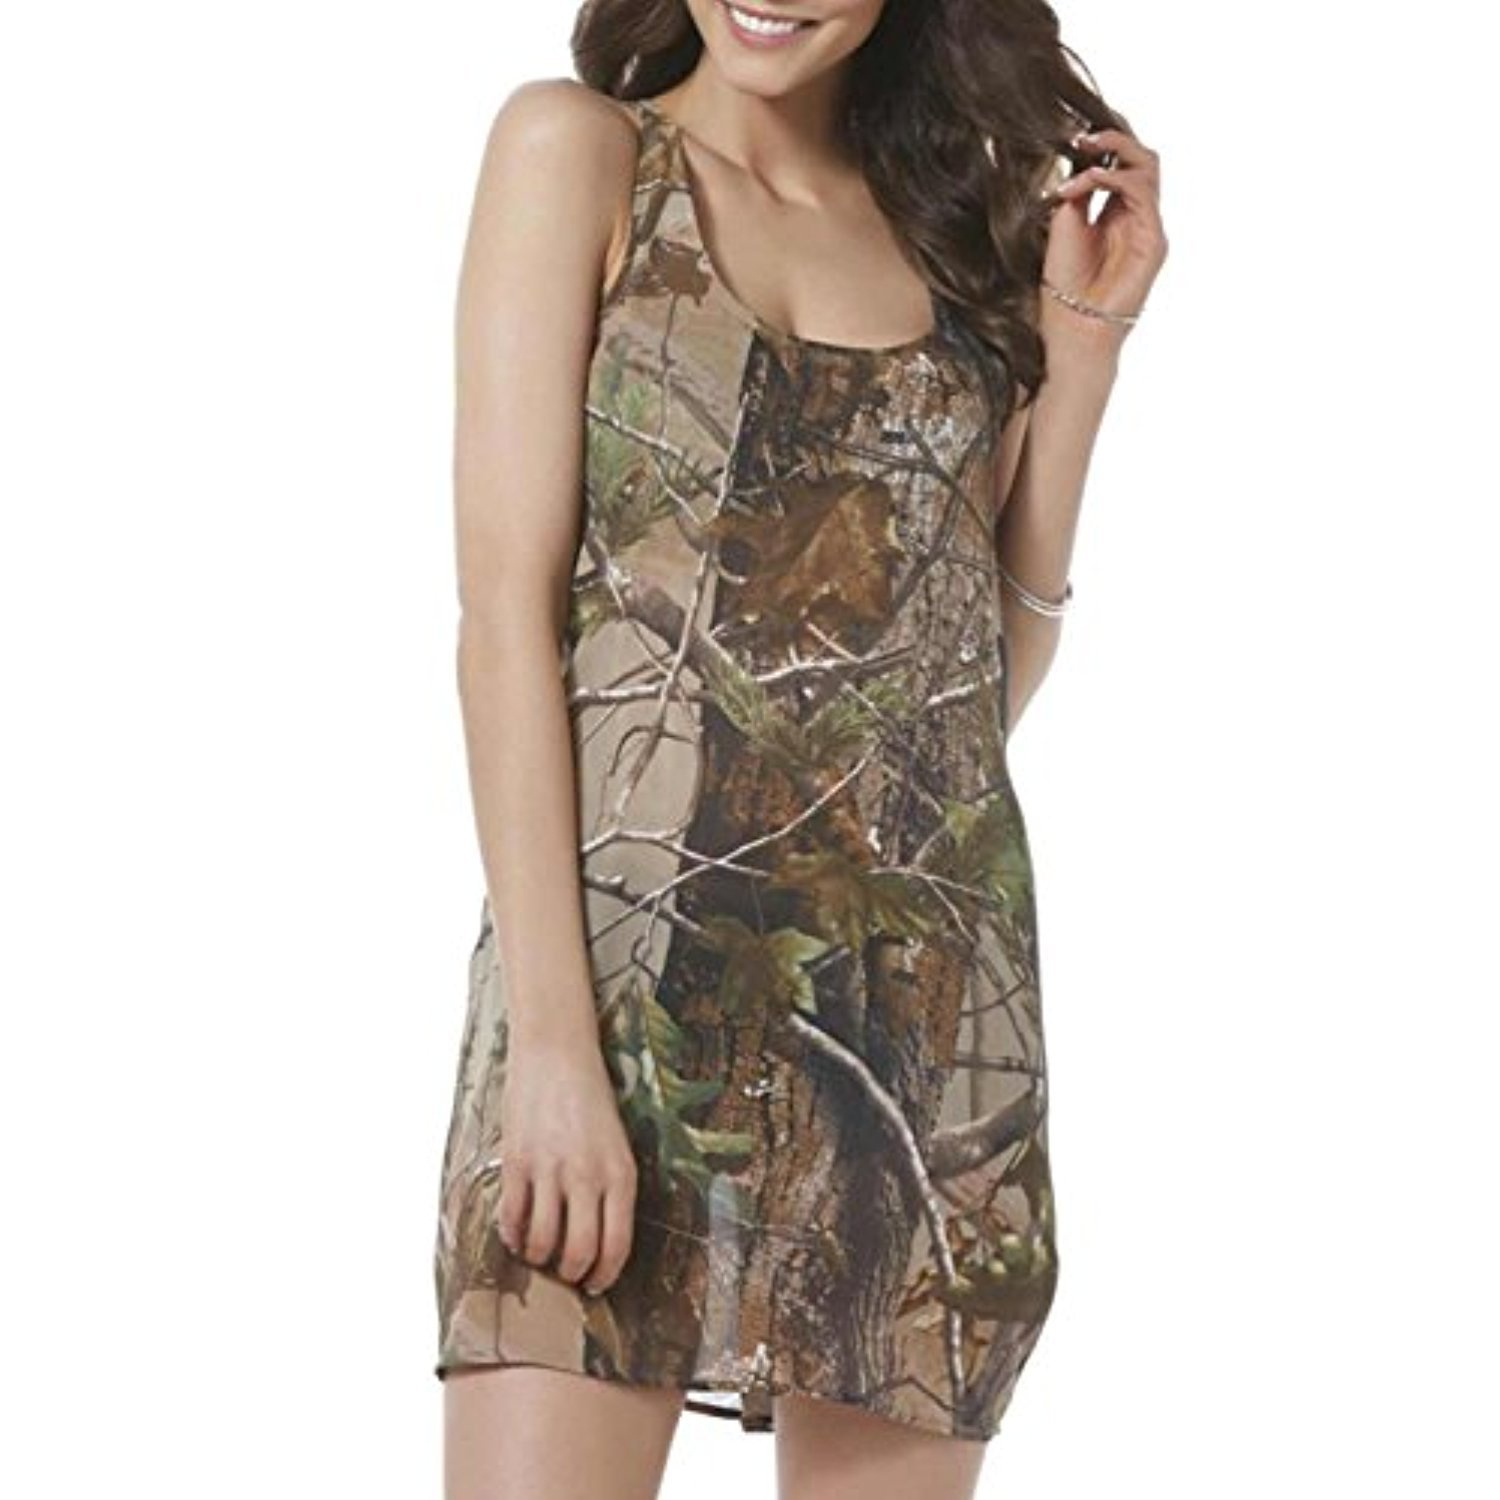 c016673a05ed Realtree Womens Green Semi-Sheer Camo Swim Suit Cover Up Camouflage ...